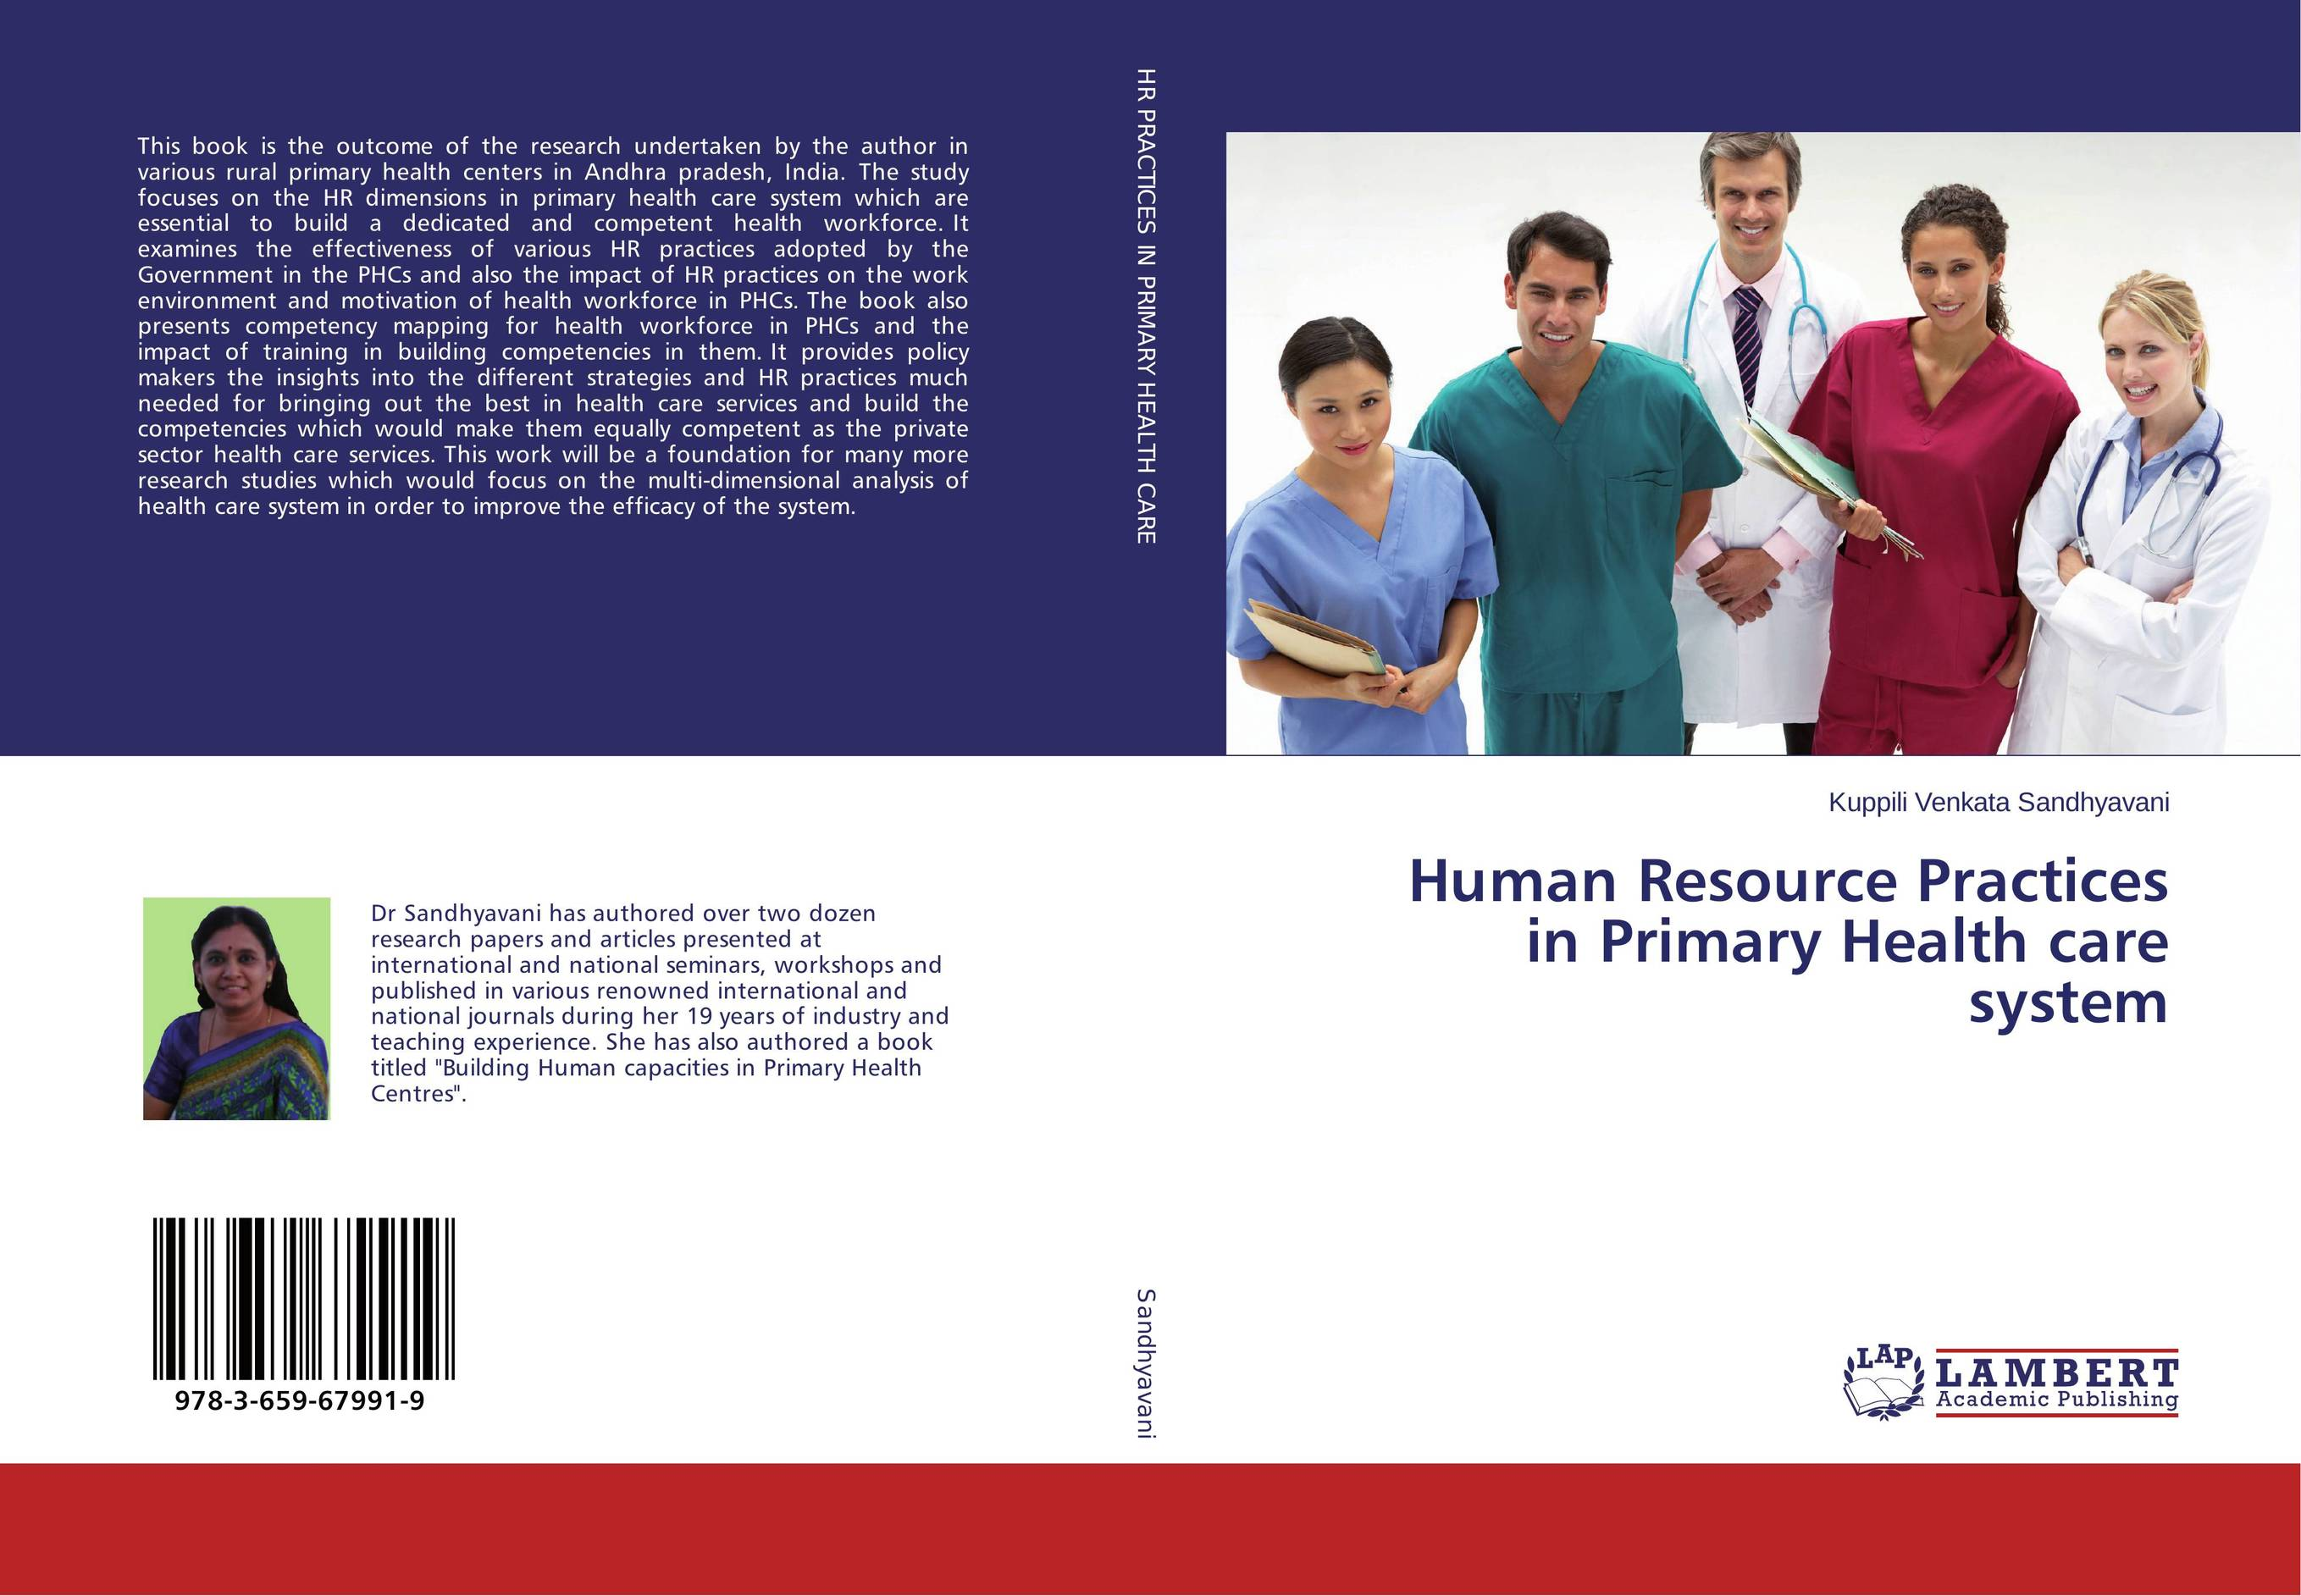 Human Resource Practices in Primary Health care system john hammergren skin in the game how putting yourself first today will revolutionize health care tomorrow